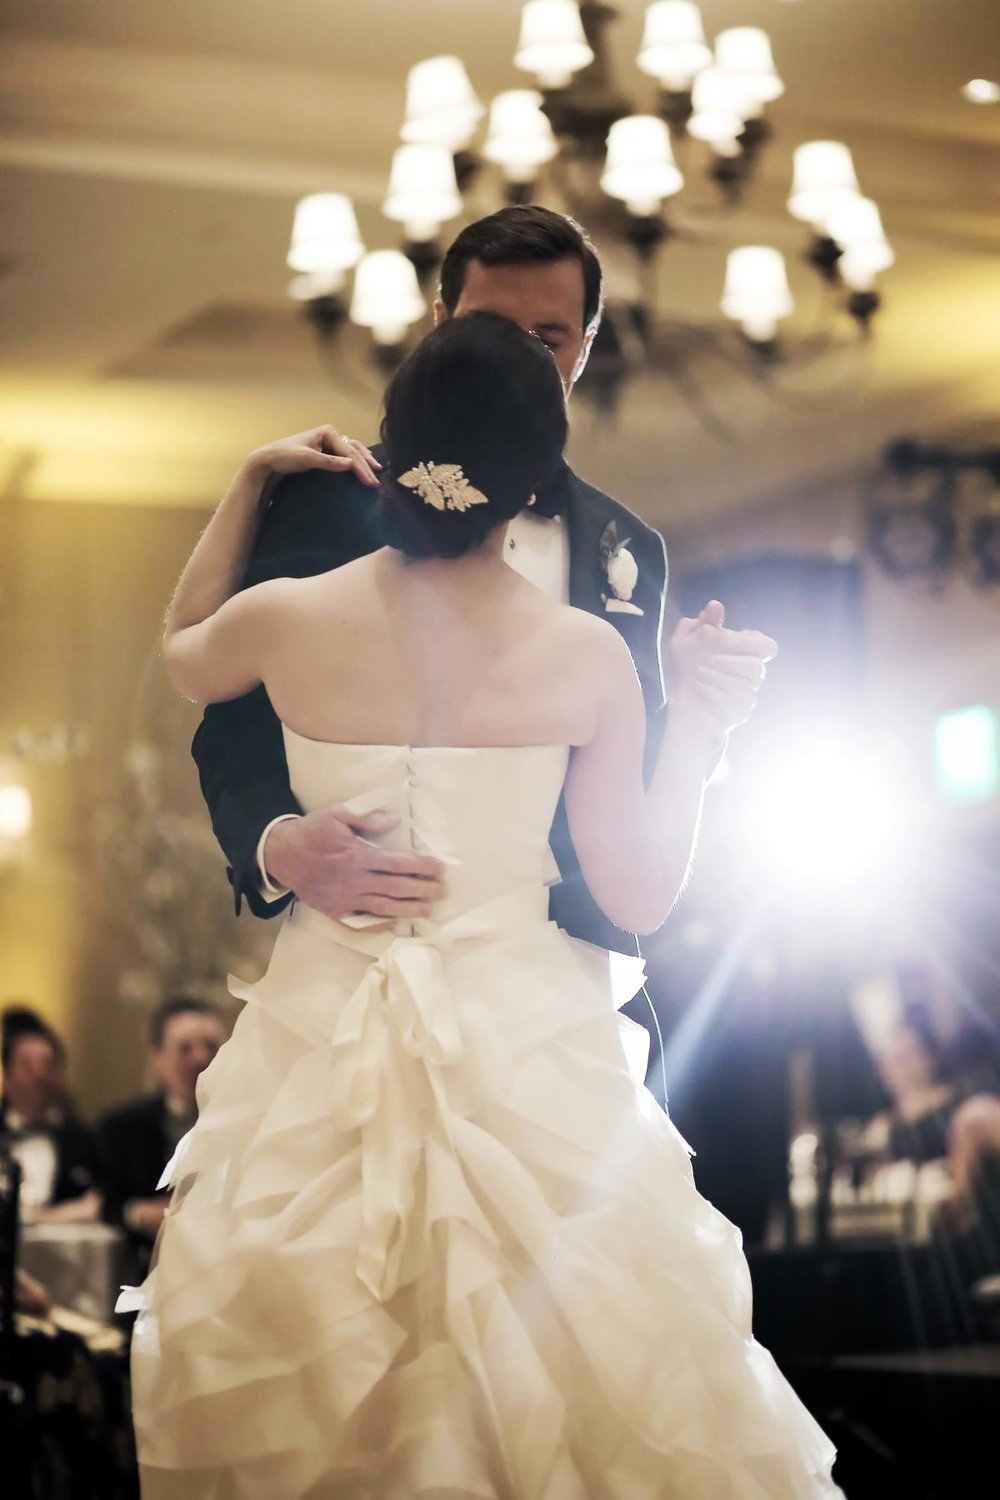 first-dance-real-wedding-montage-deer-valley-park-city-weddings_pepper_nix_photography-49.jpg